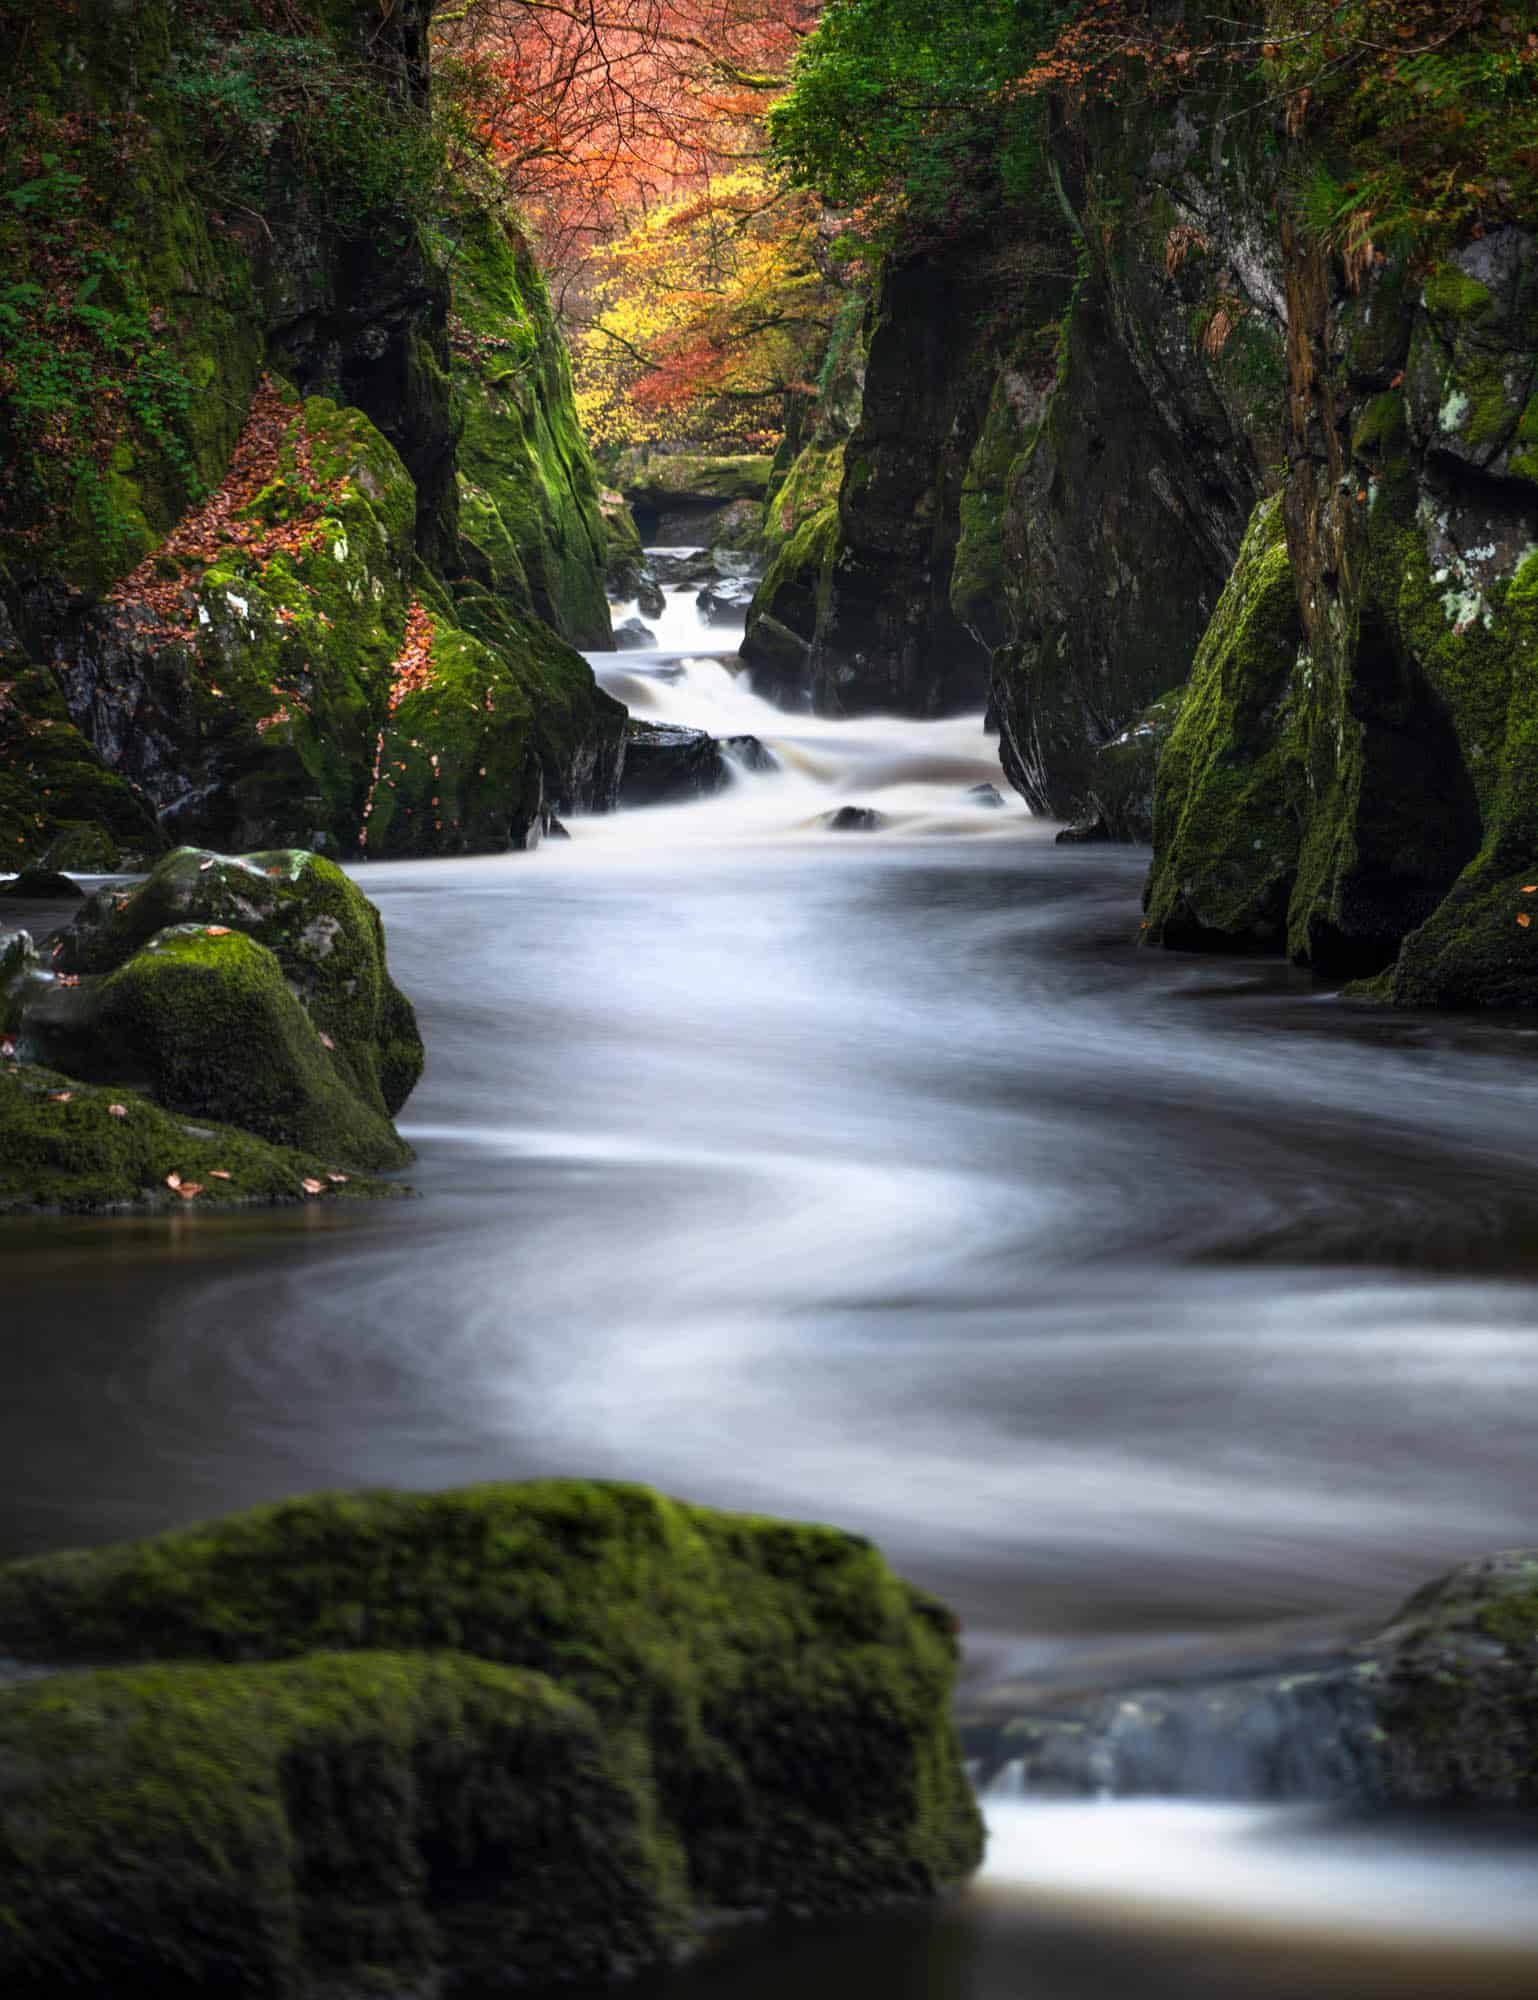 A spot that will one day be an essential on every landscape photographers list of Snowdonia photography locations is the Fairy Glen.